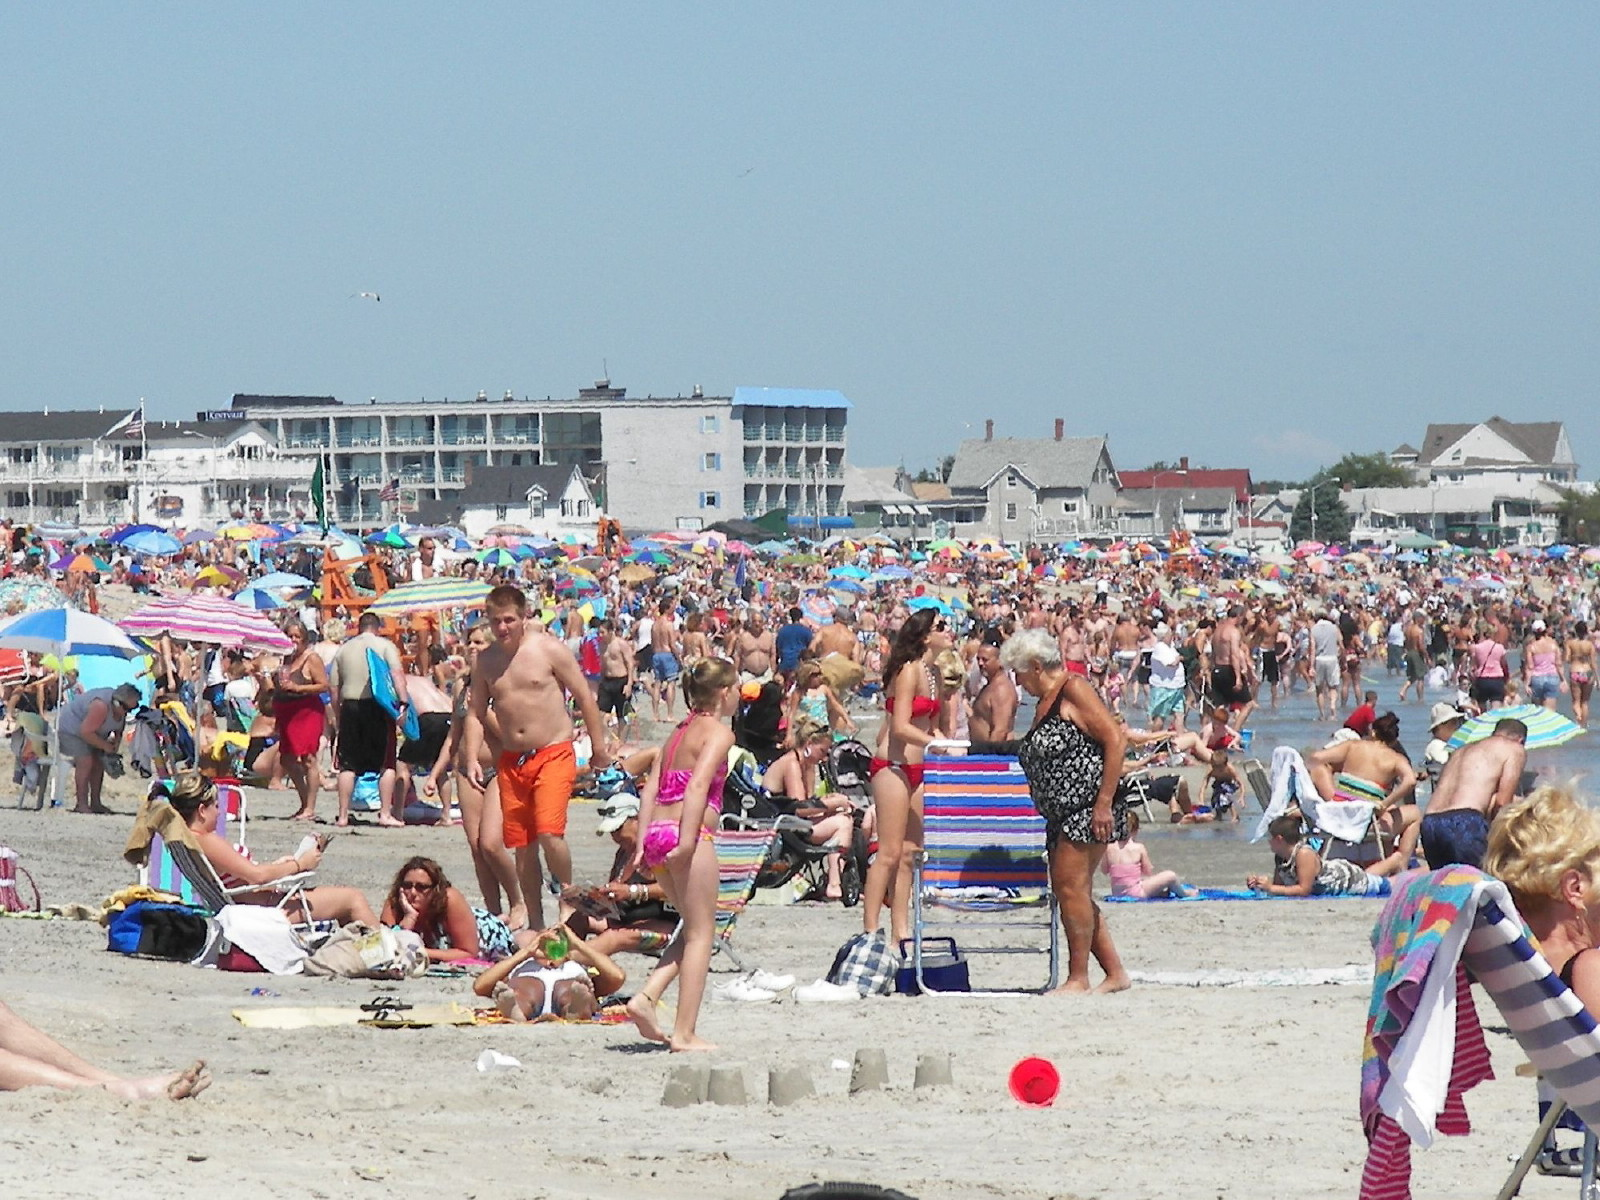 Top Attraction Place In New Hampshire-Hampton Beach